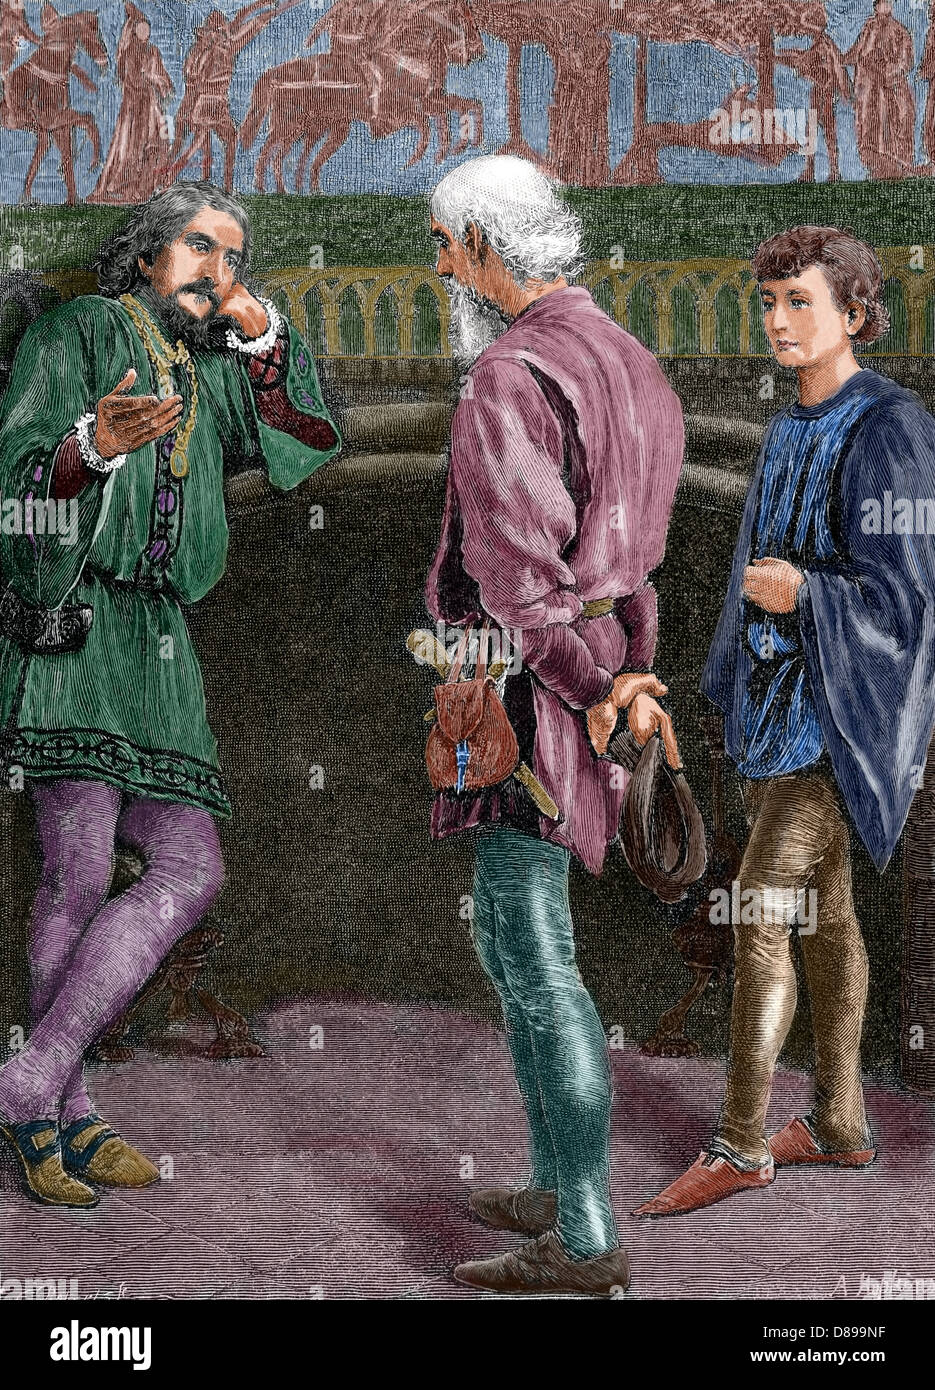 William Shakespeare (1564-1616). English writer. Hamlet and the comedians. Act II, Scene II. Engraving. Colored. - Stock Image